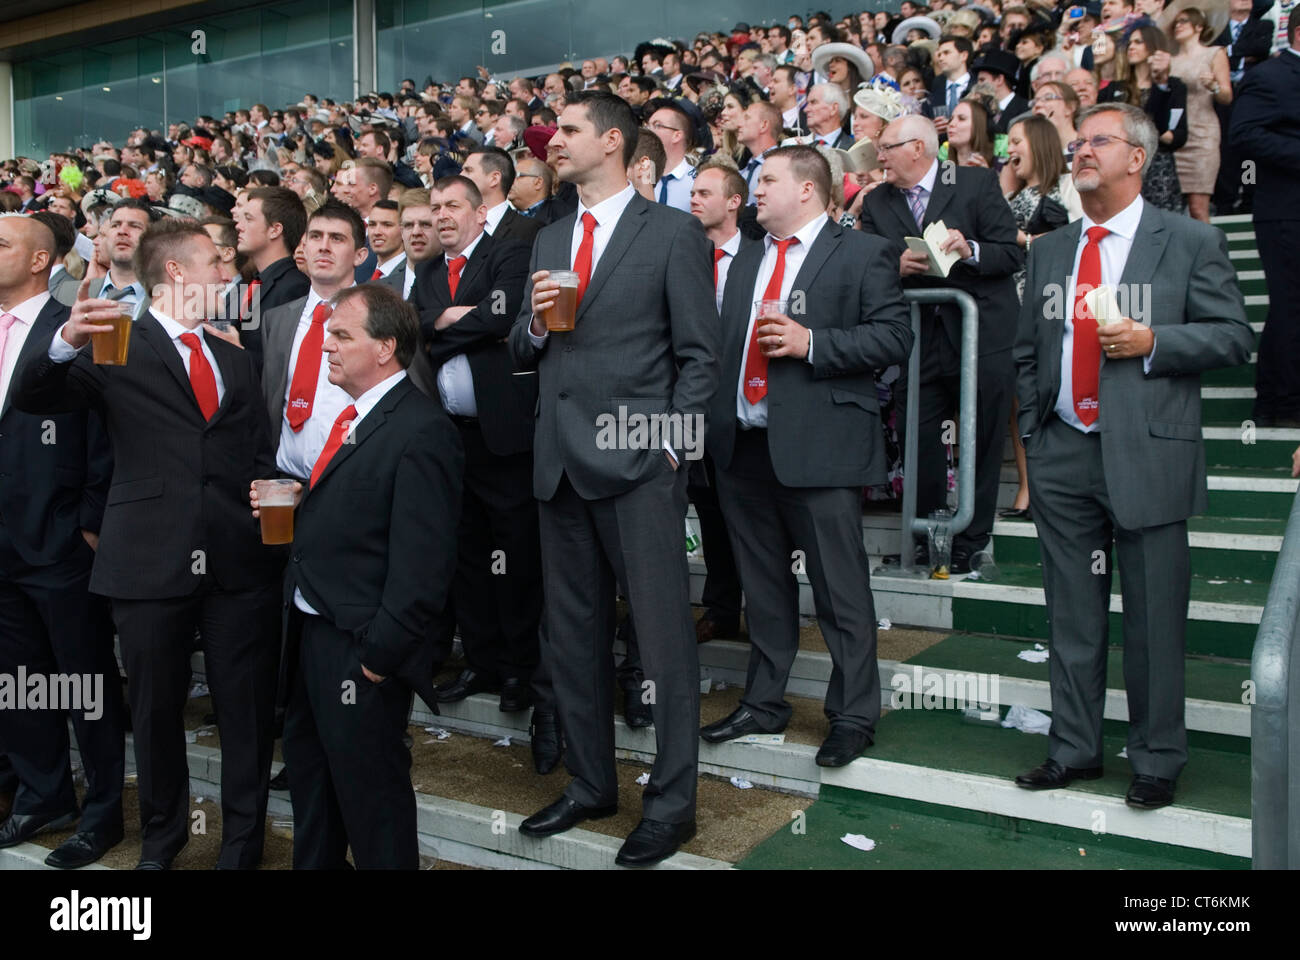 Stag party group. Royal Ascot horse racing Berkshire. HOMER SYKES - Stock Image